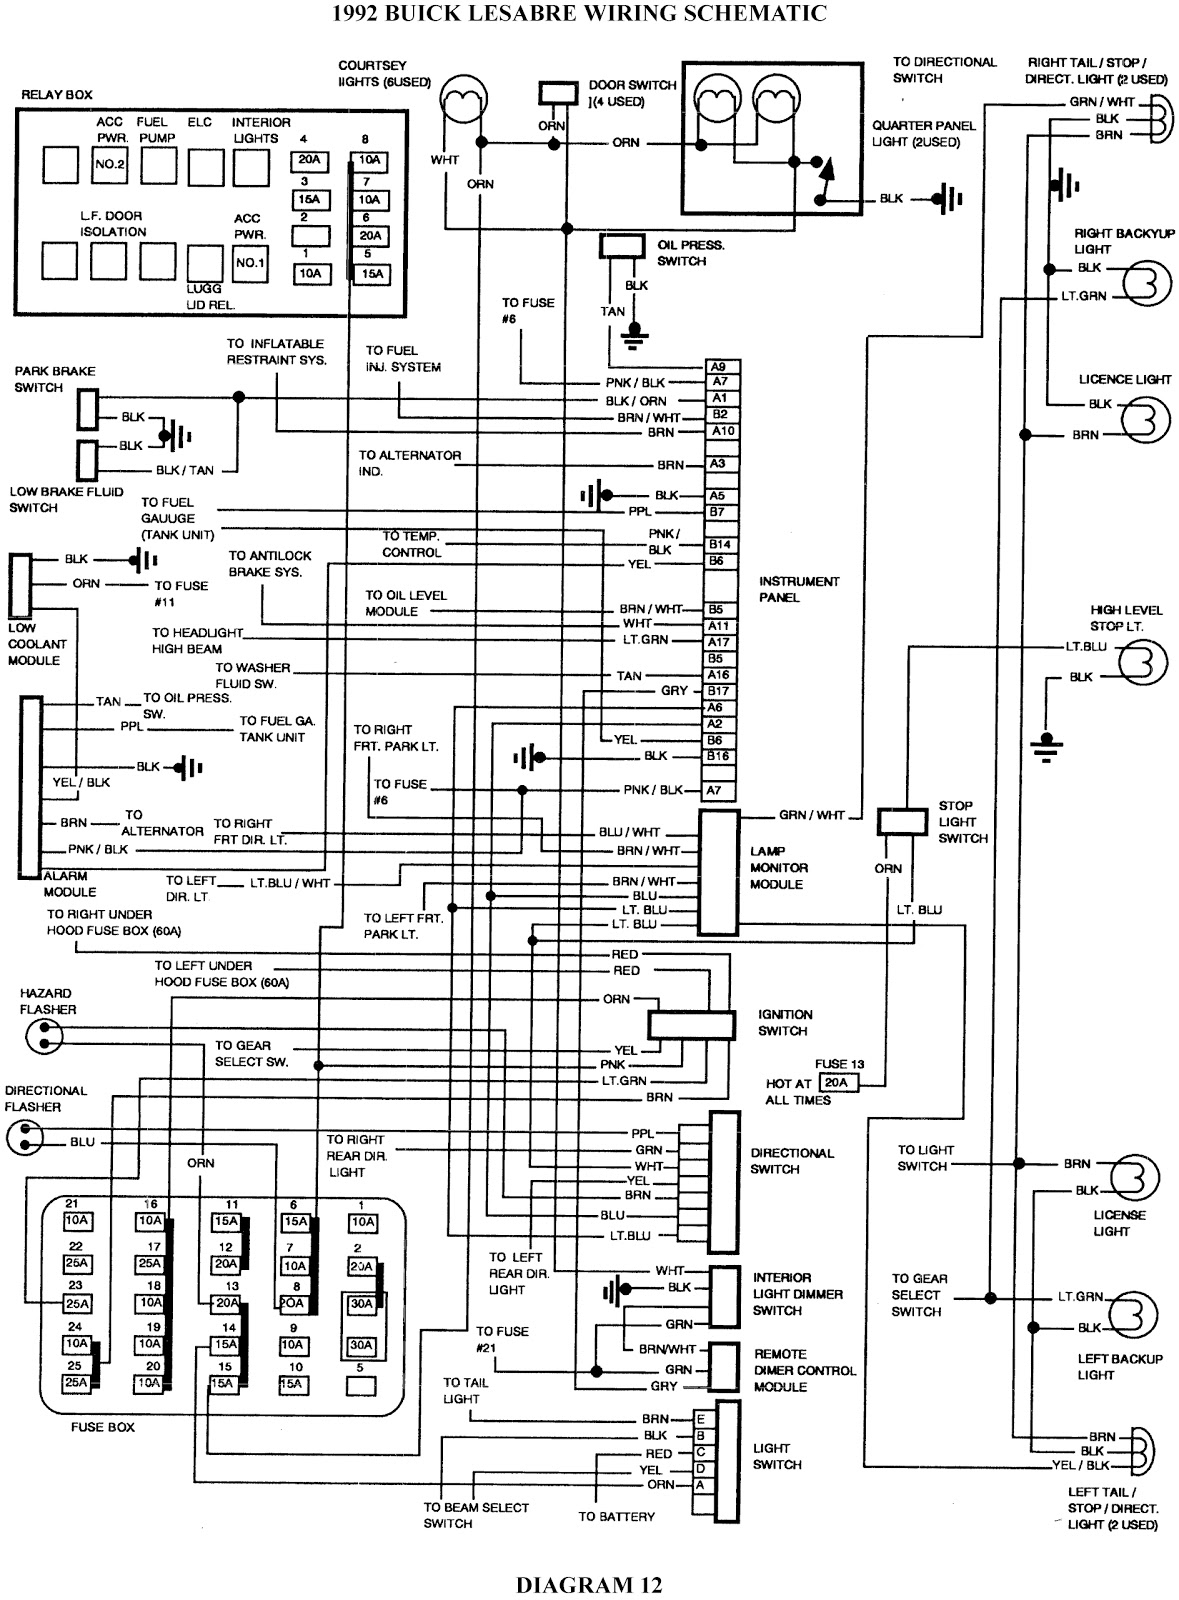 schematic wiring the wiring diagram 2011 schematic wiring diagrams solutions schematic